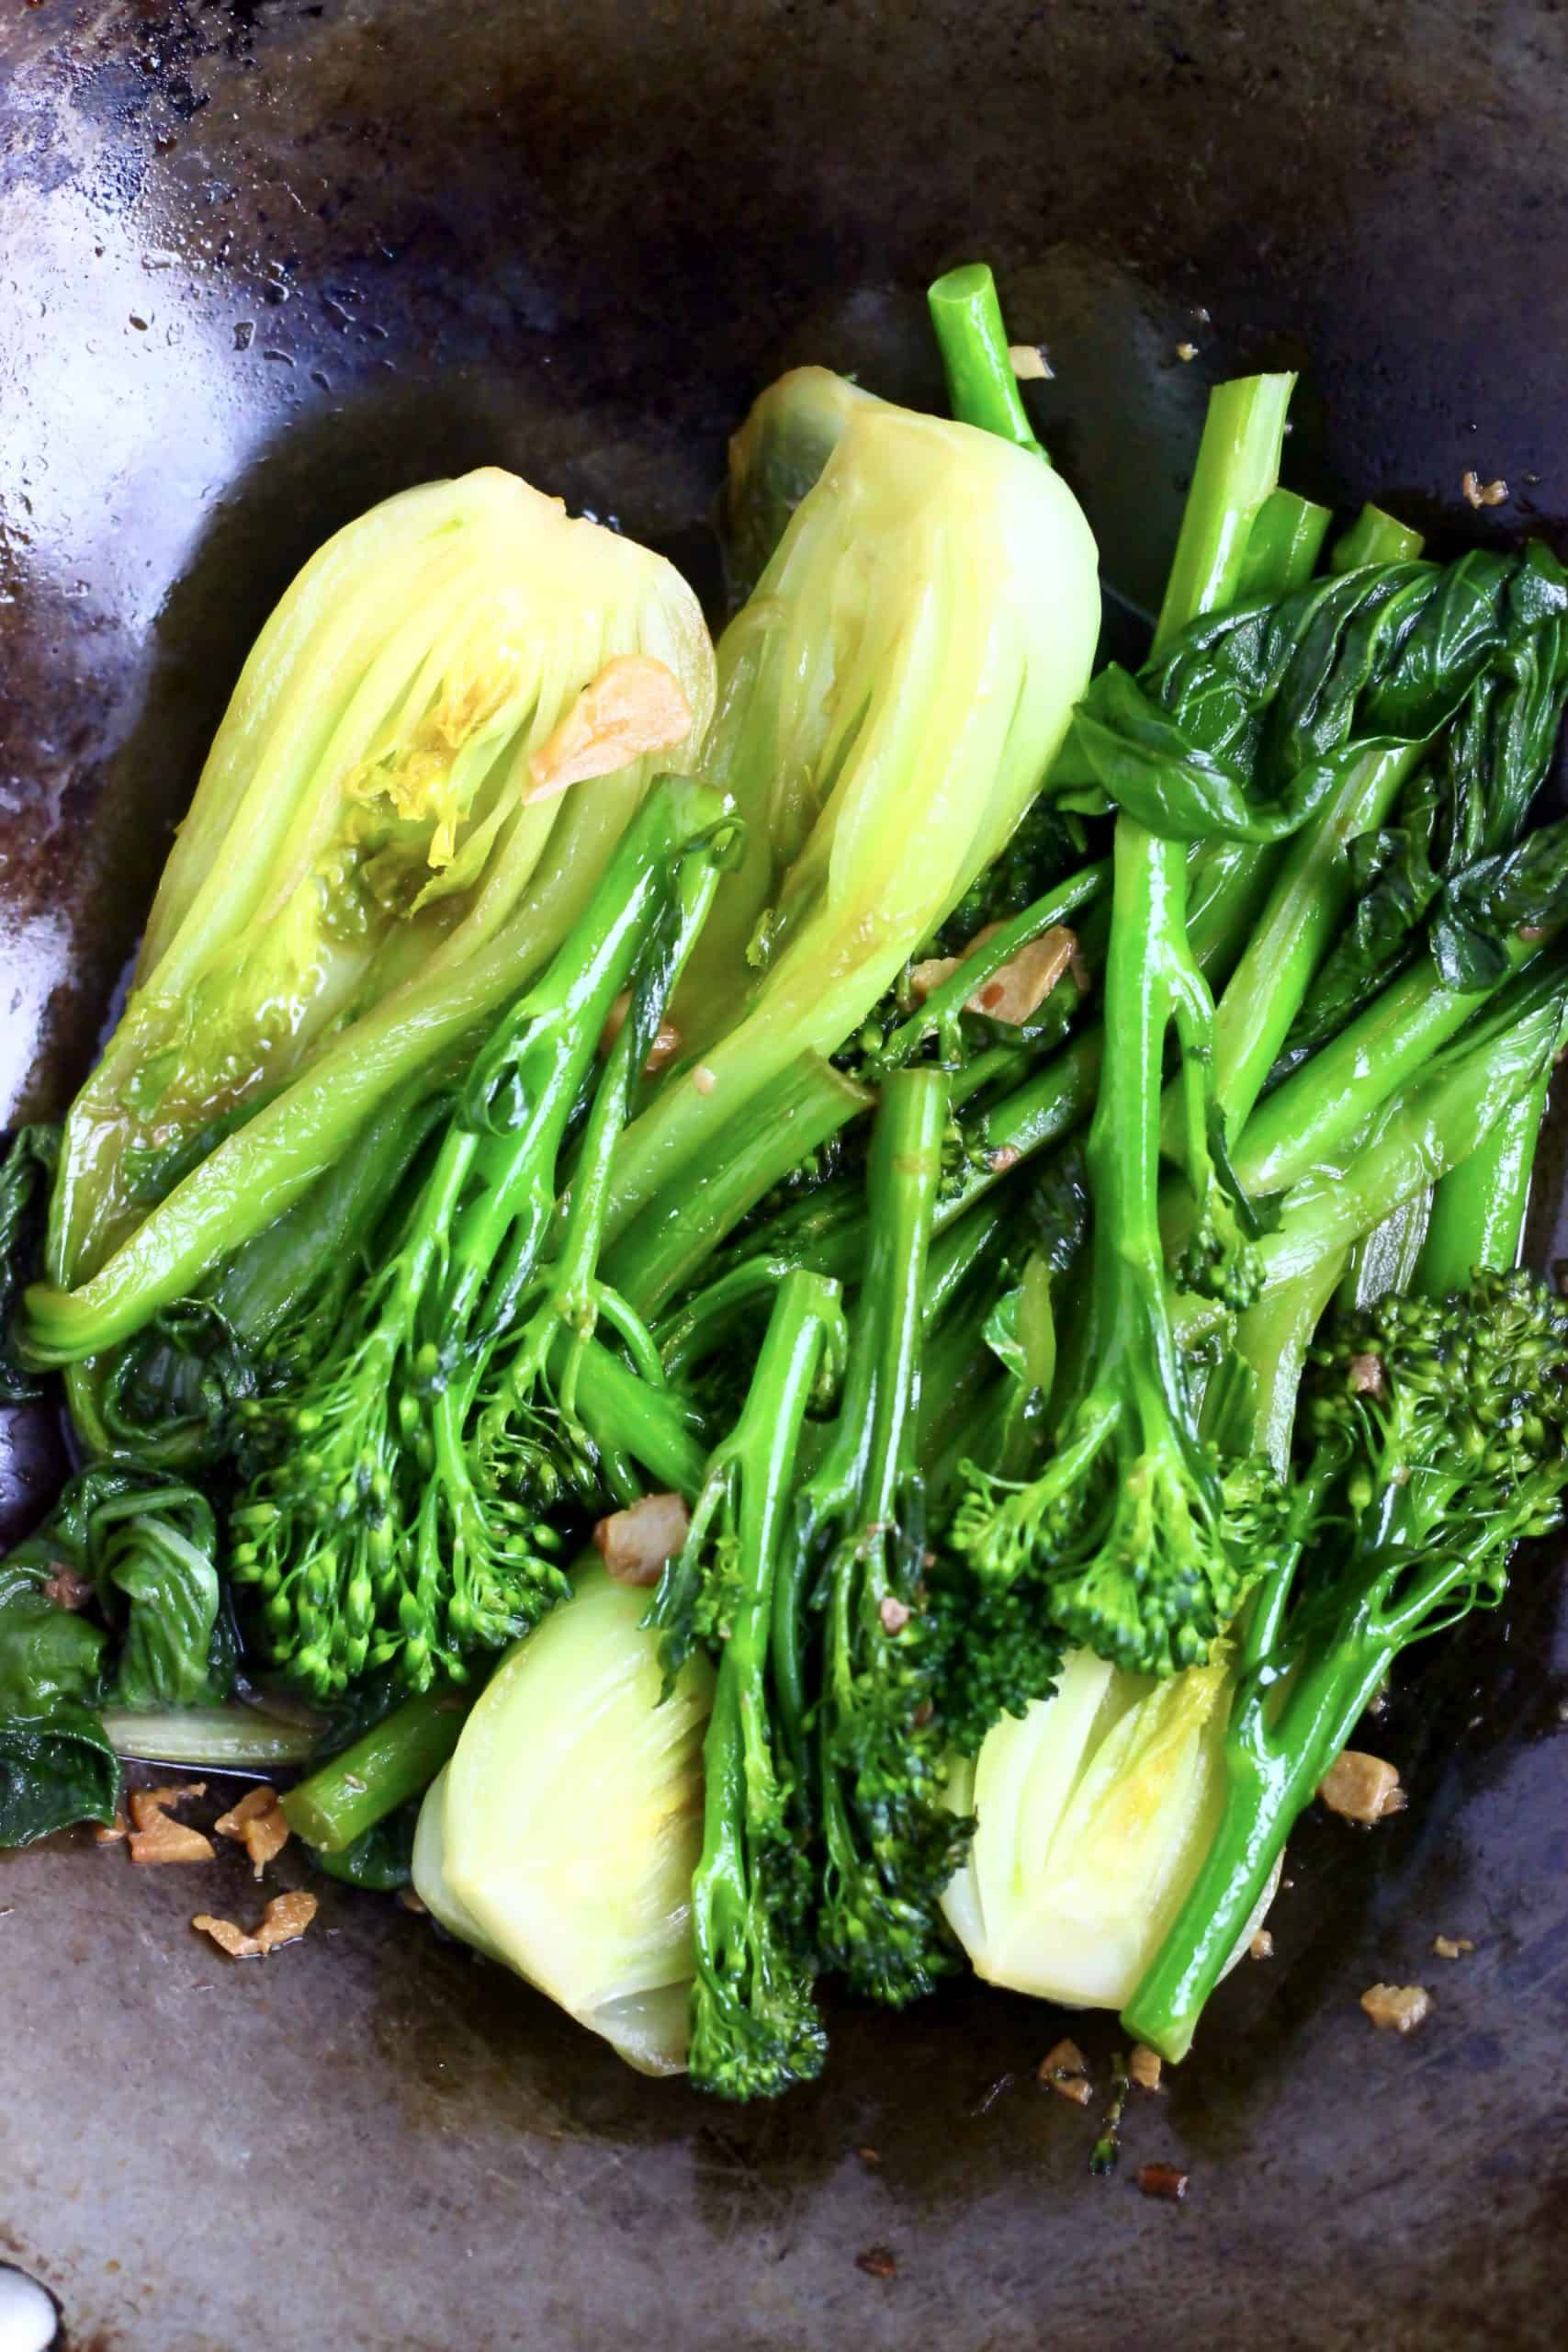 Cooked Wagamama wok-fried greens in a black wok